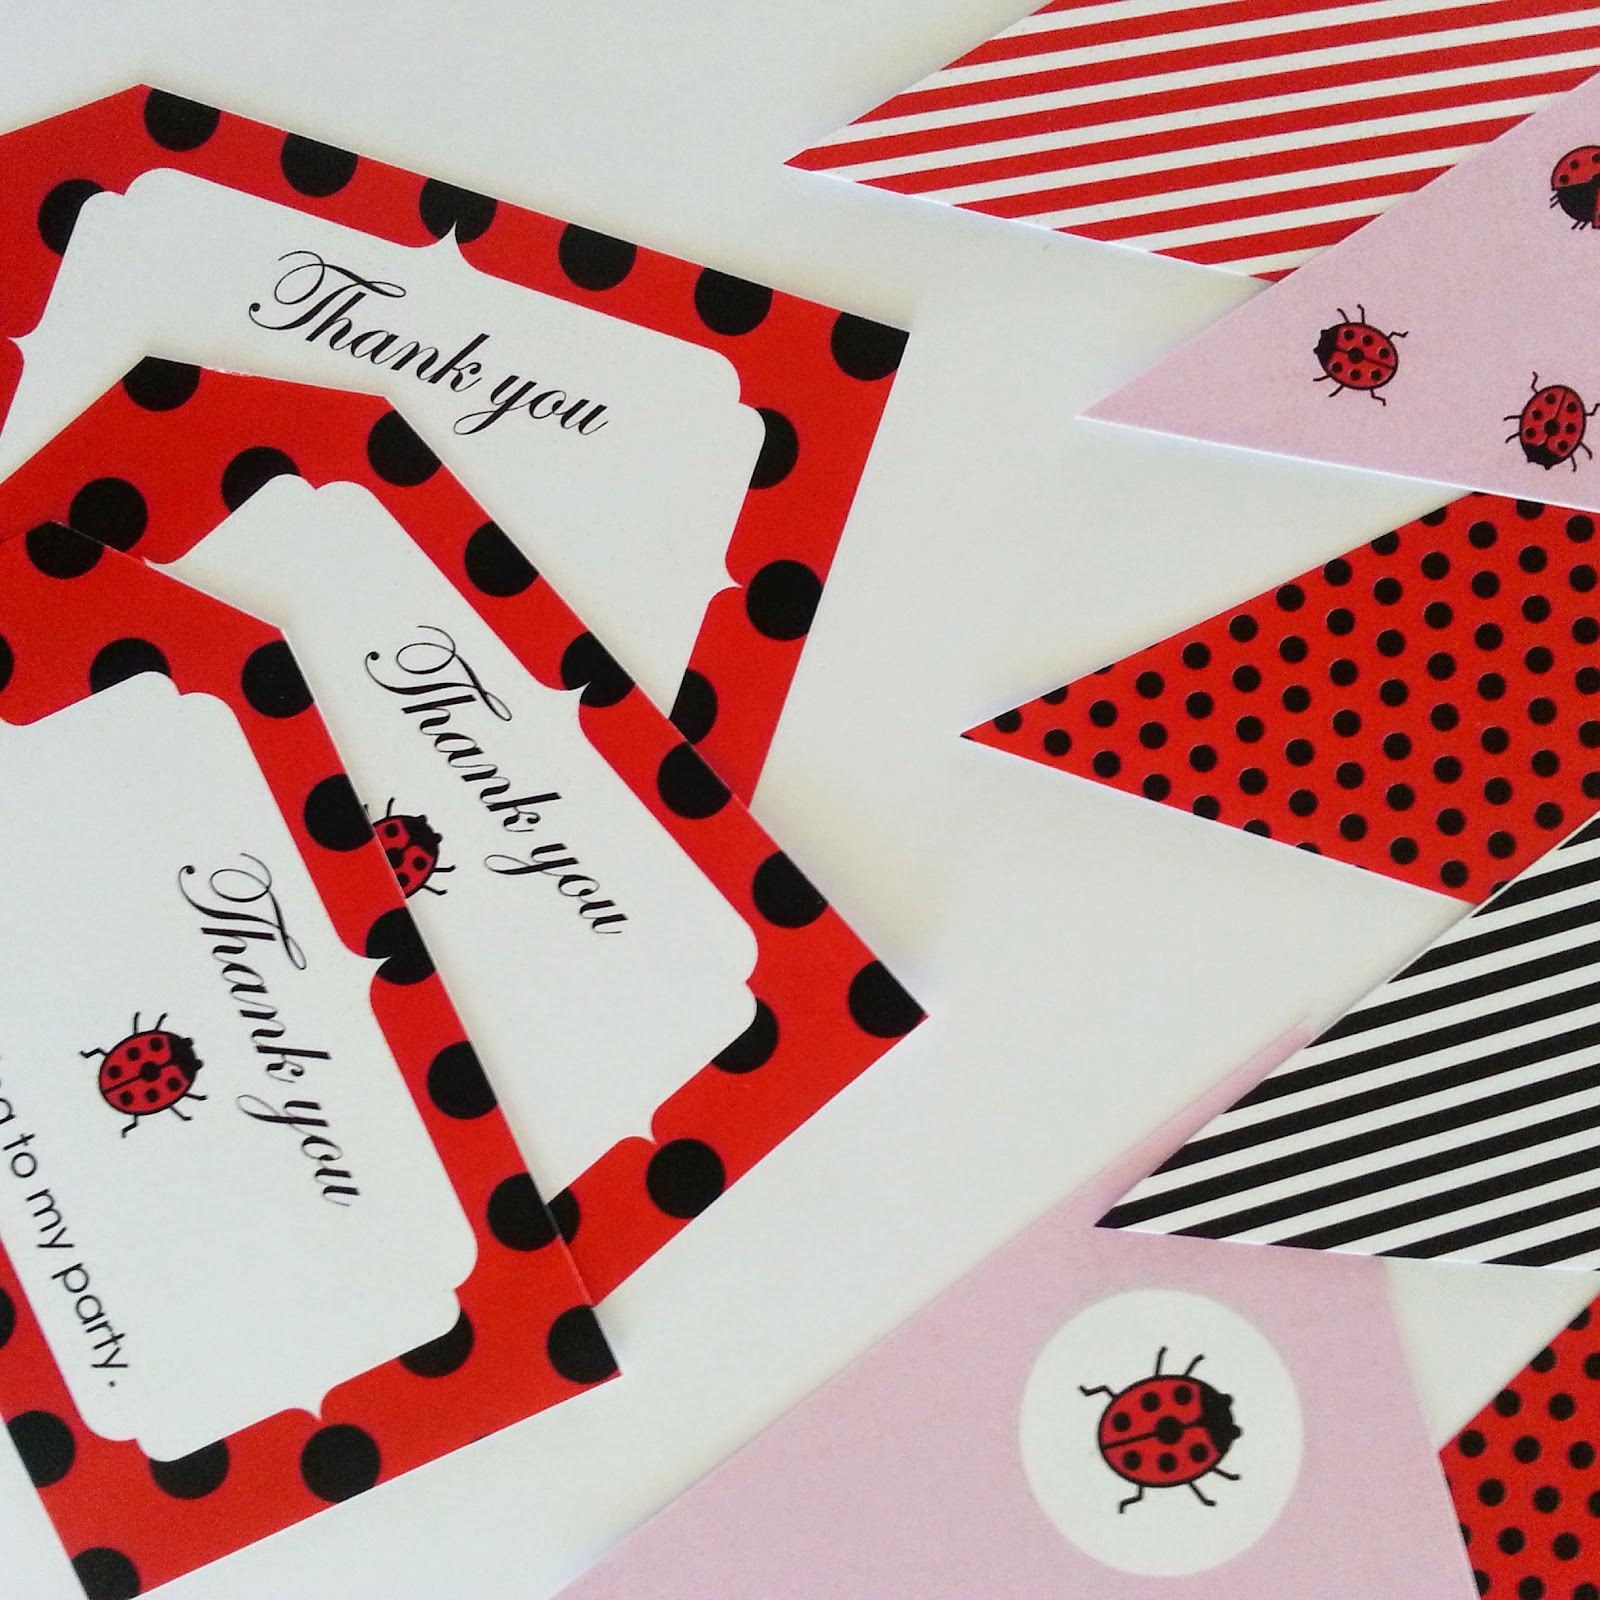 image of ladybug themed party decoration and supplies. Bunting flags and thank you tags.